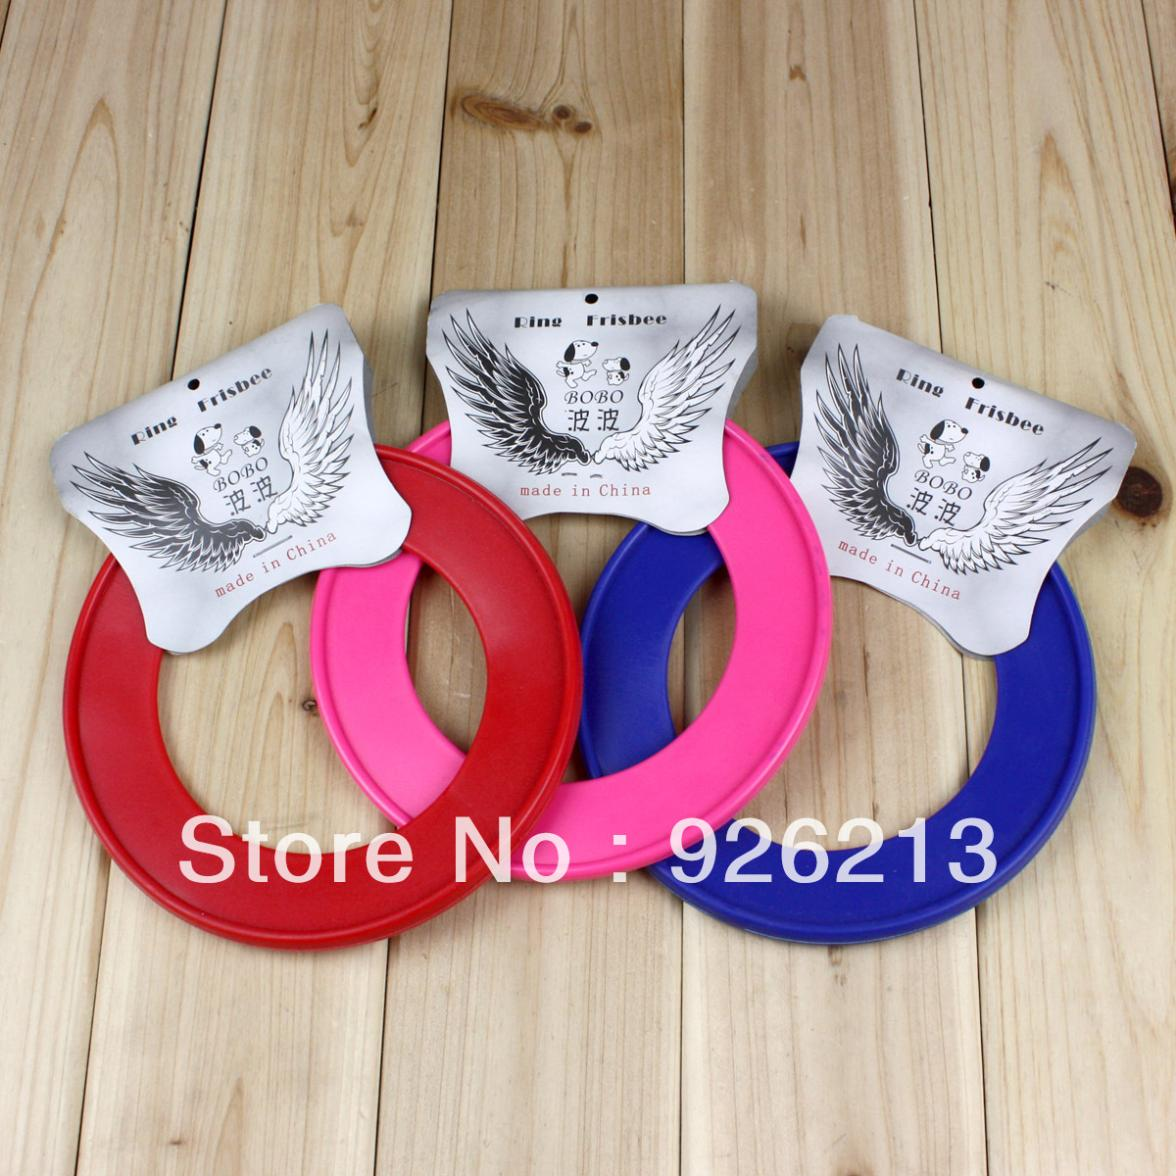 Pet supplies outdoor training toy pet plastic soft frisbee free shipping 6pcs/lot(China (Mainland))